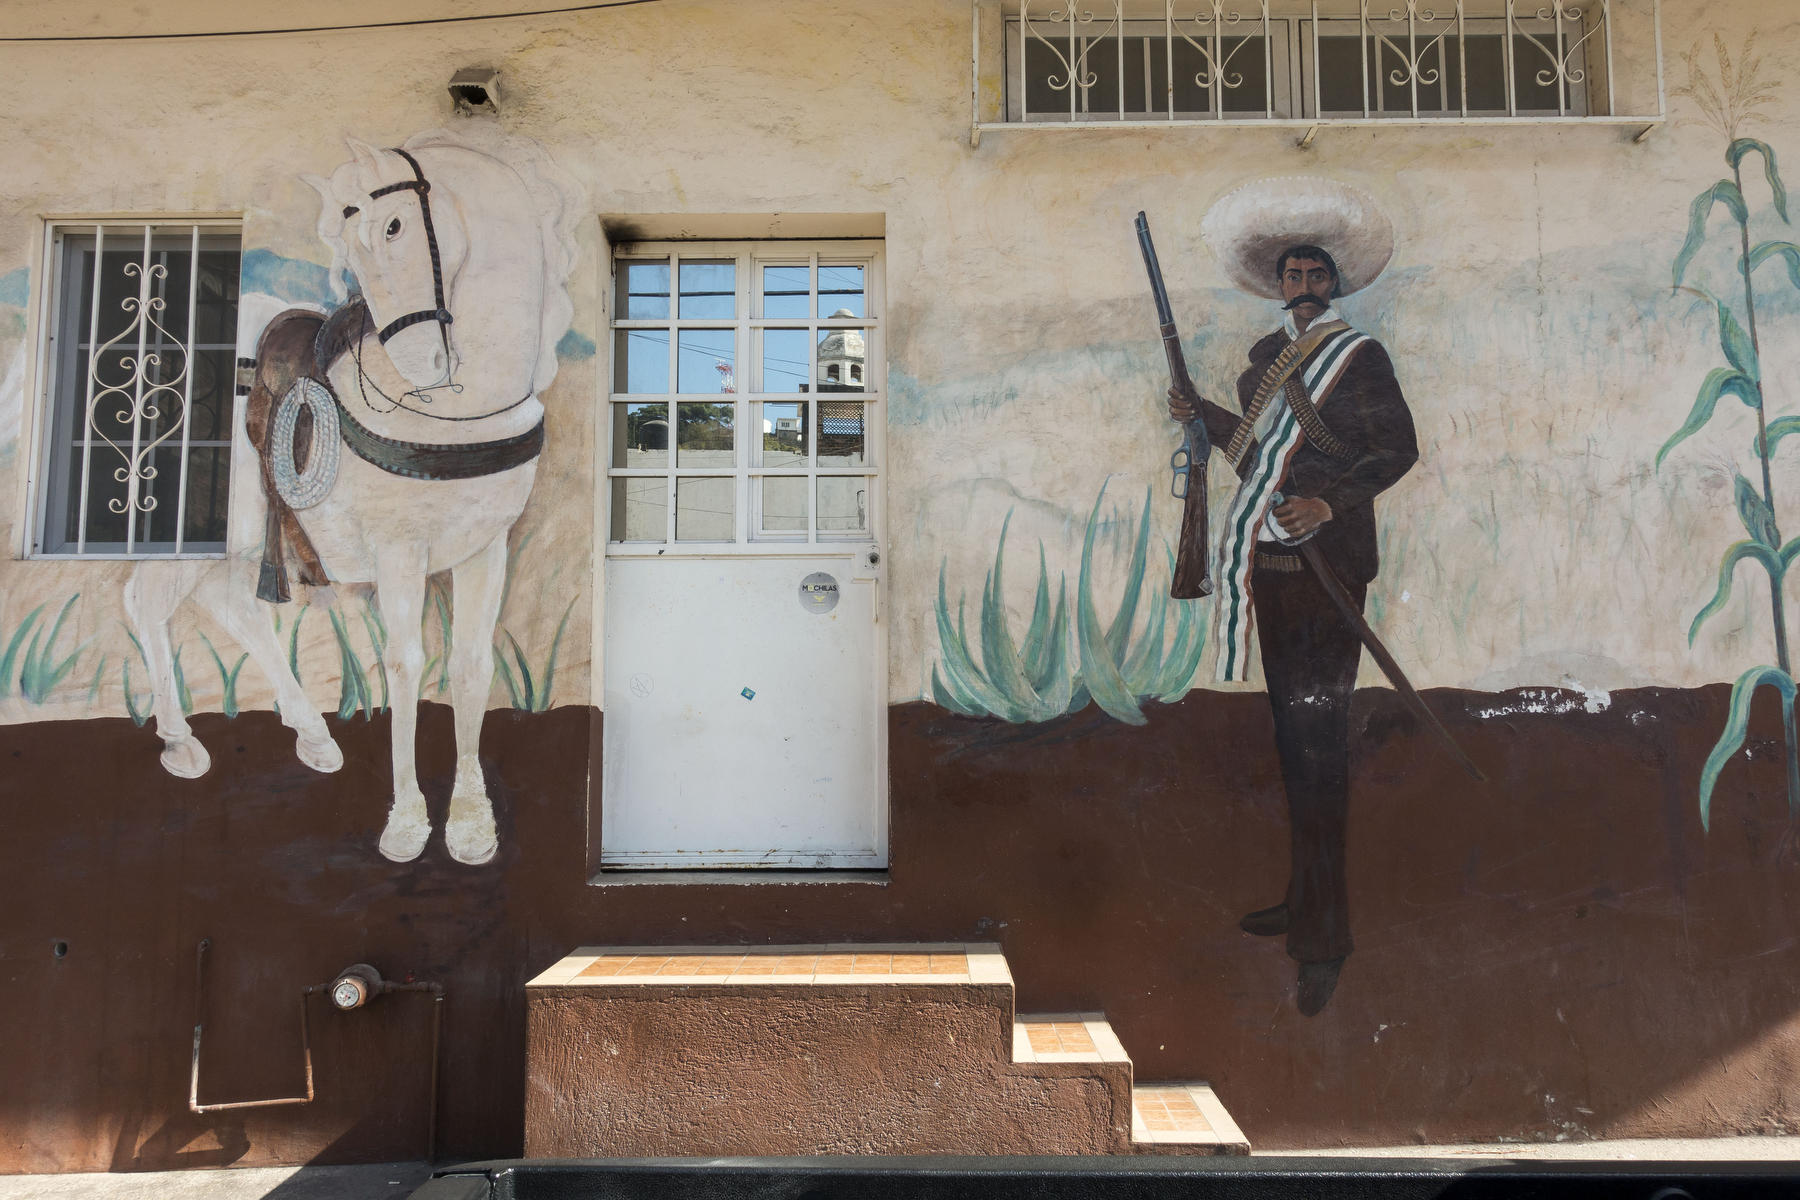 General Pancho Villa and his horse Seven Leagues painted on the side of a house in Old Town. : PUERTO VALLARTA - Wall Art & Bicycle Tour : Viviane Moos |  Documentary Photographer